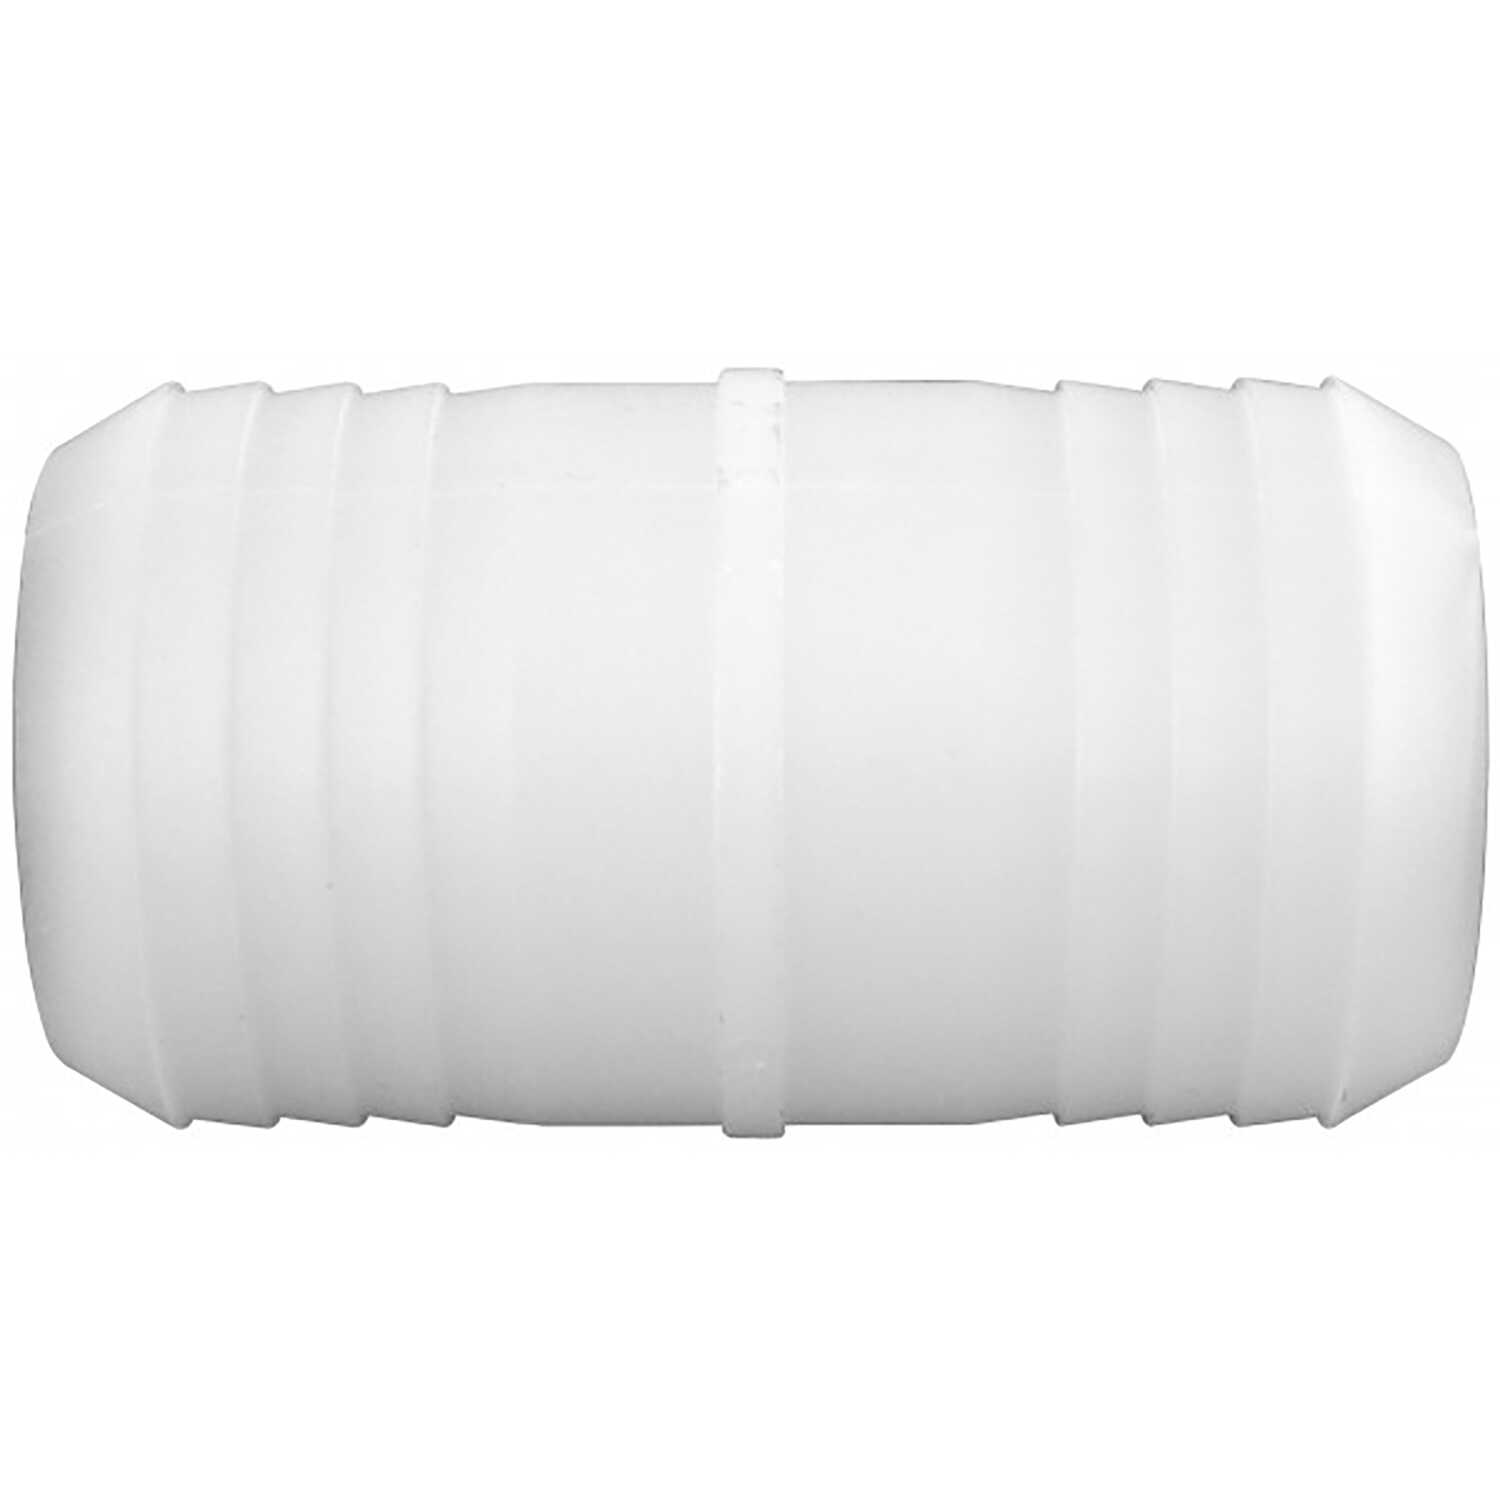 Green Leaf  1 1/2 in. Barb   x 1-1/2 in. Dia. Barb  Nylon  Hose Adapter